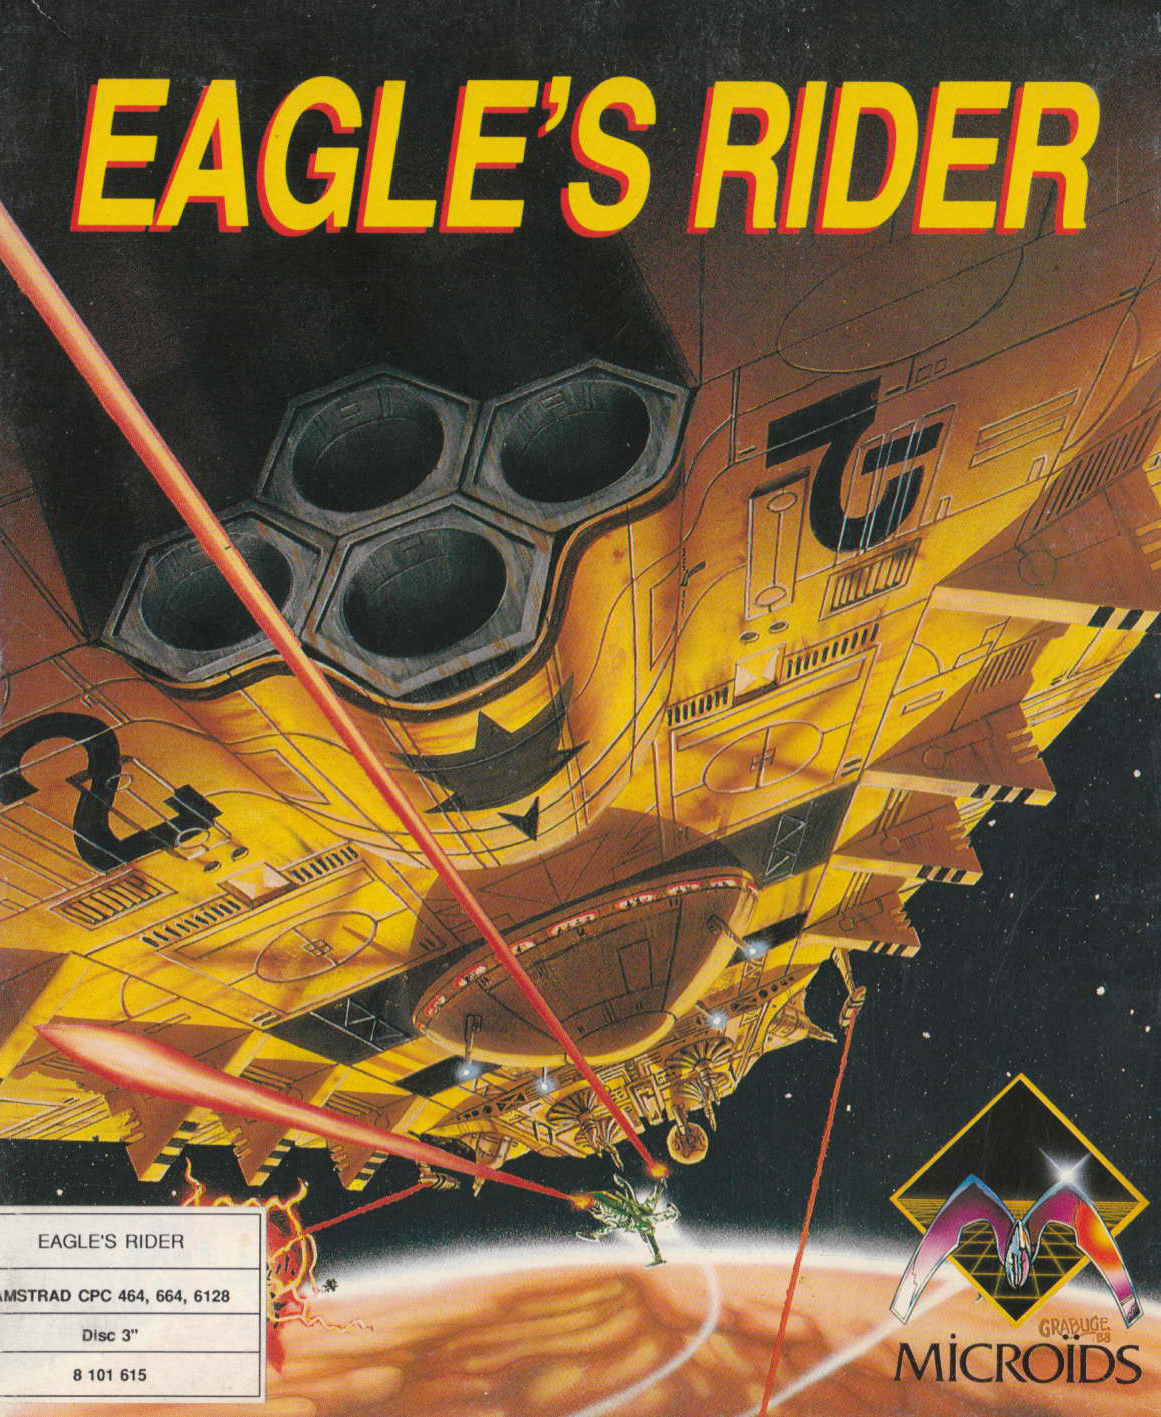 screenshot of the Amstrad CPC game Eagle's rider by GameBase CPC